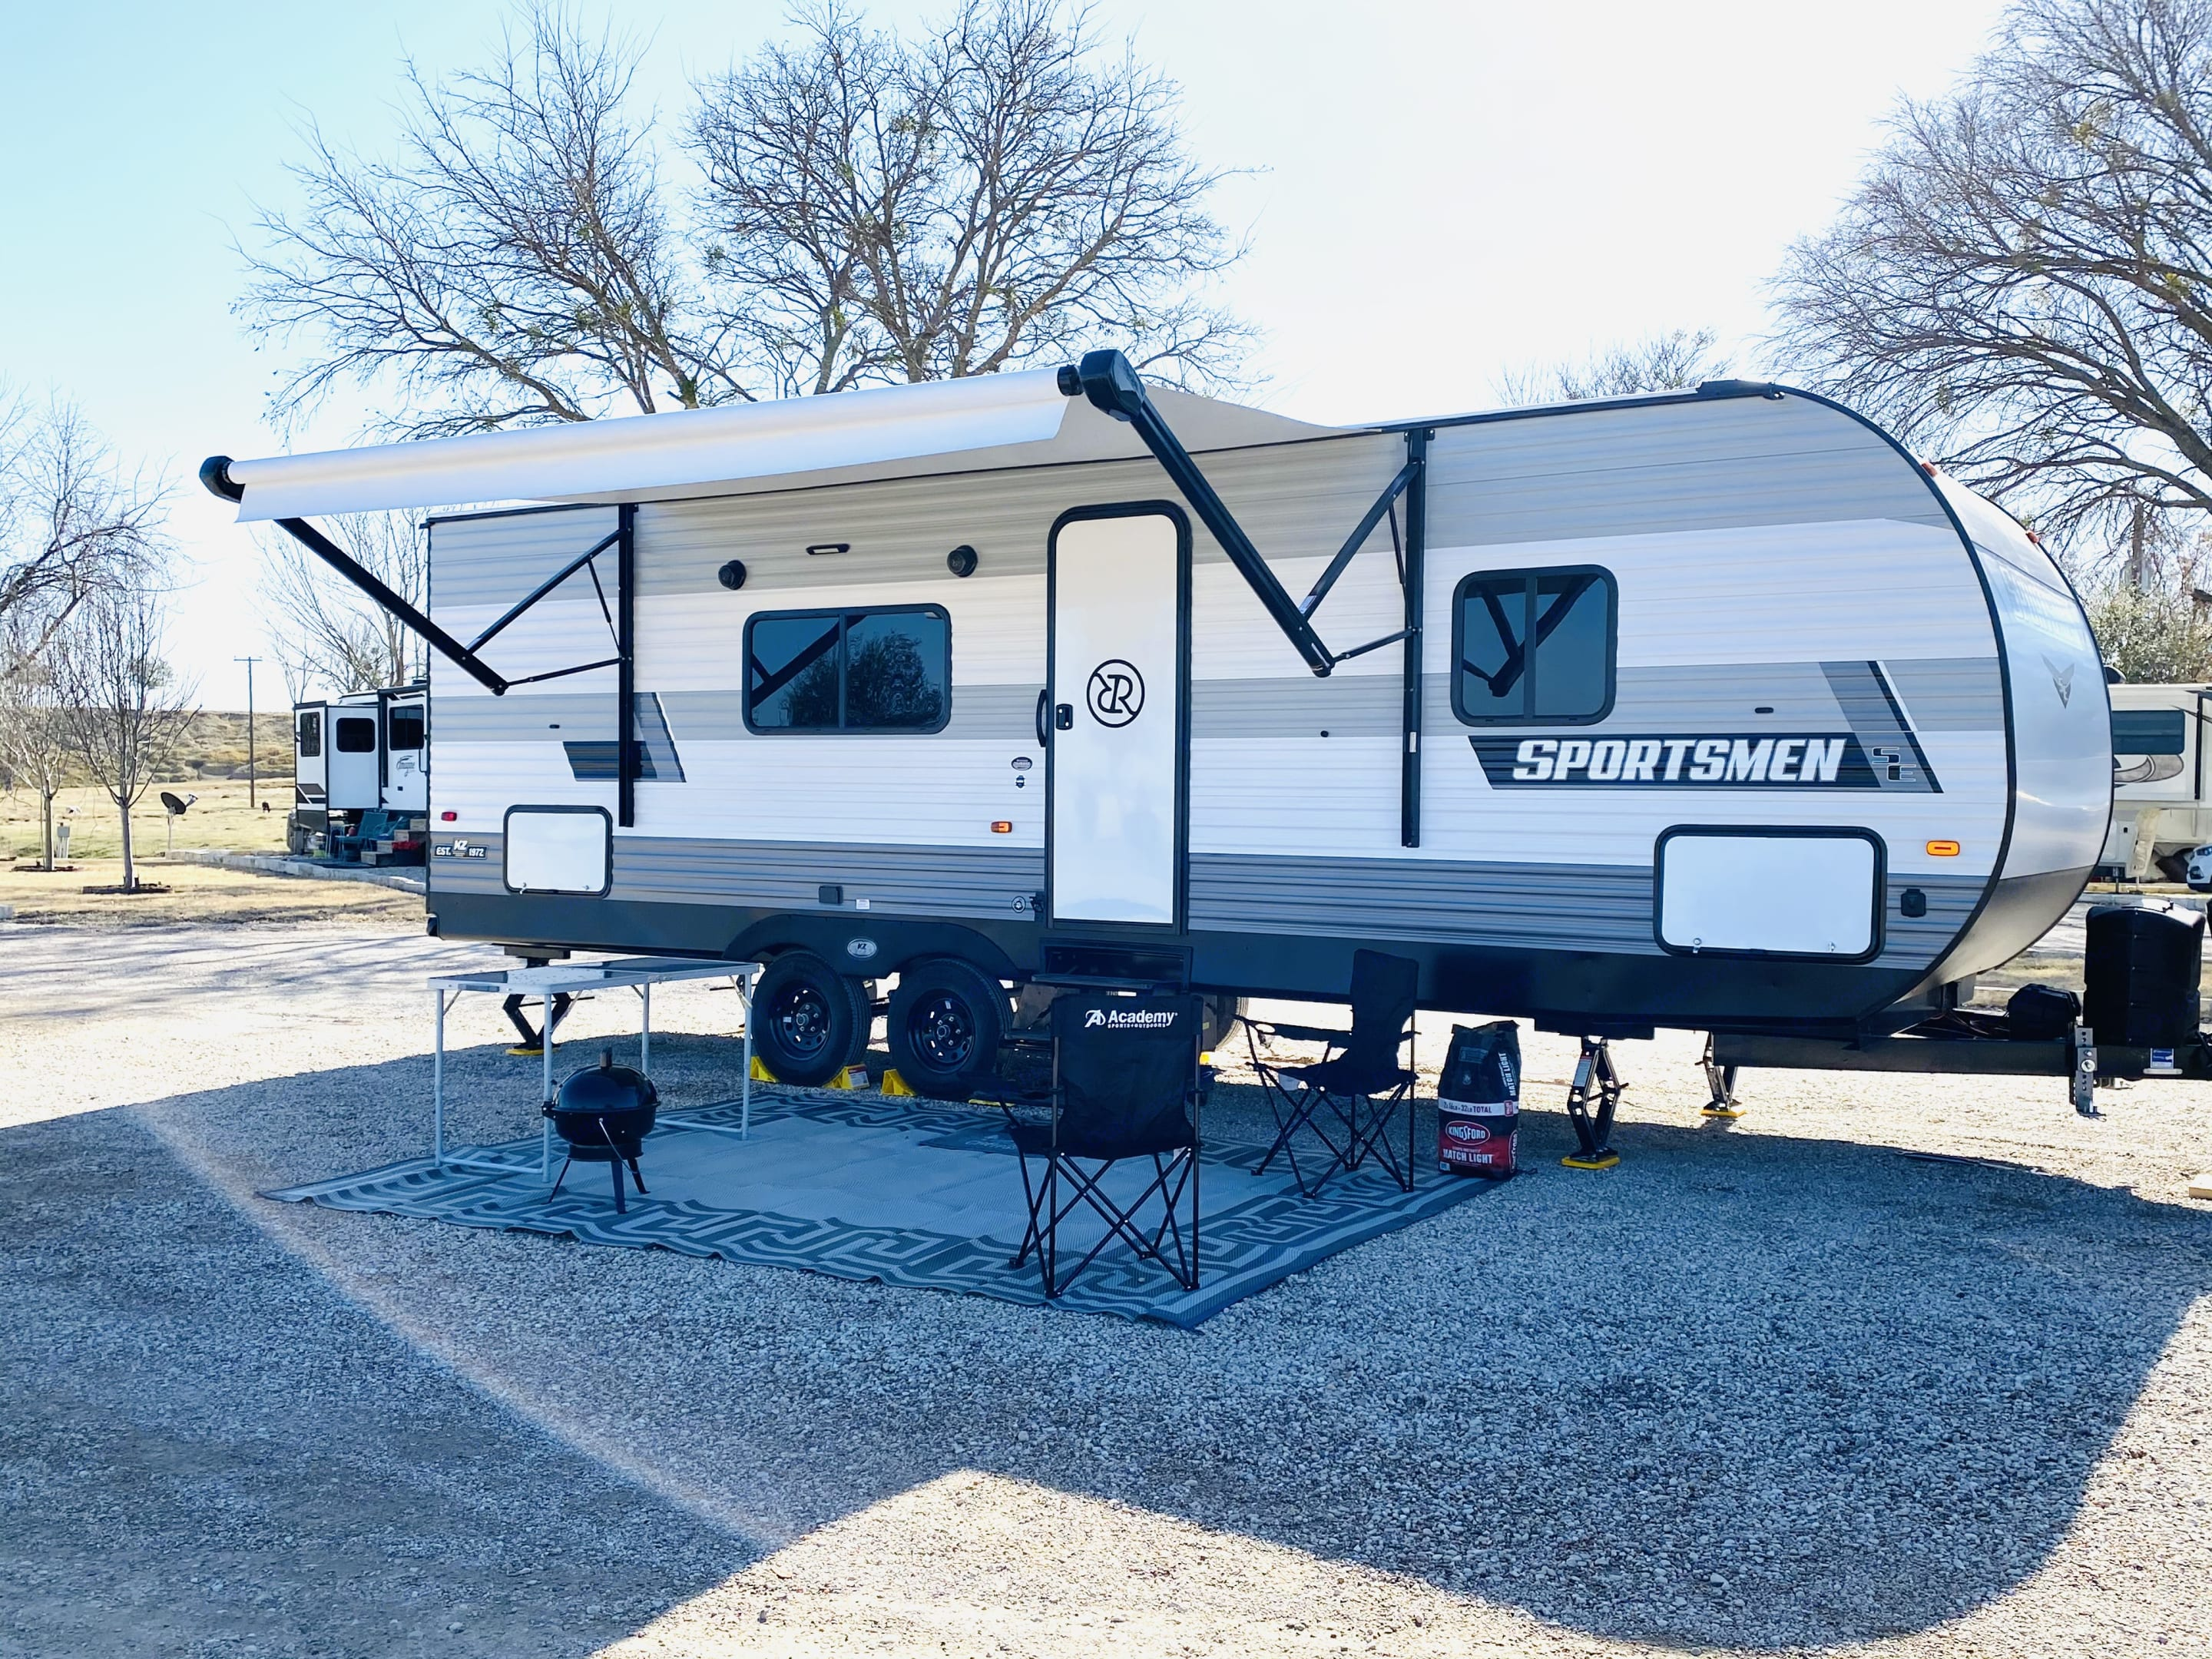 This is set up with the outdoor rug, table, chairs, BBQ pit. Its just missing you and your family.. K-Z Manufacturing Sportsmen 2021